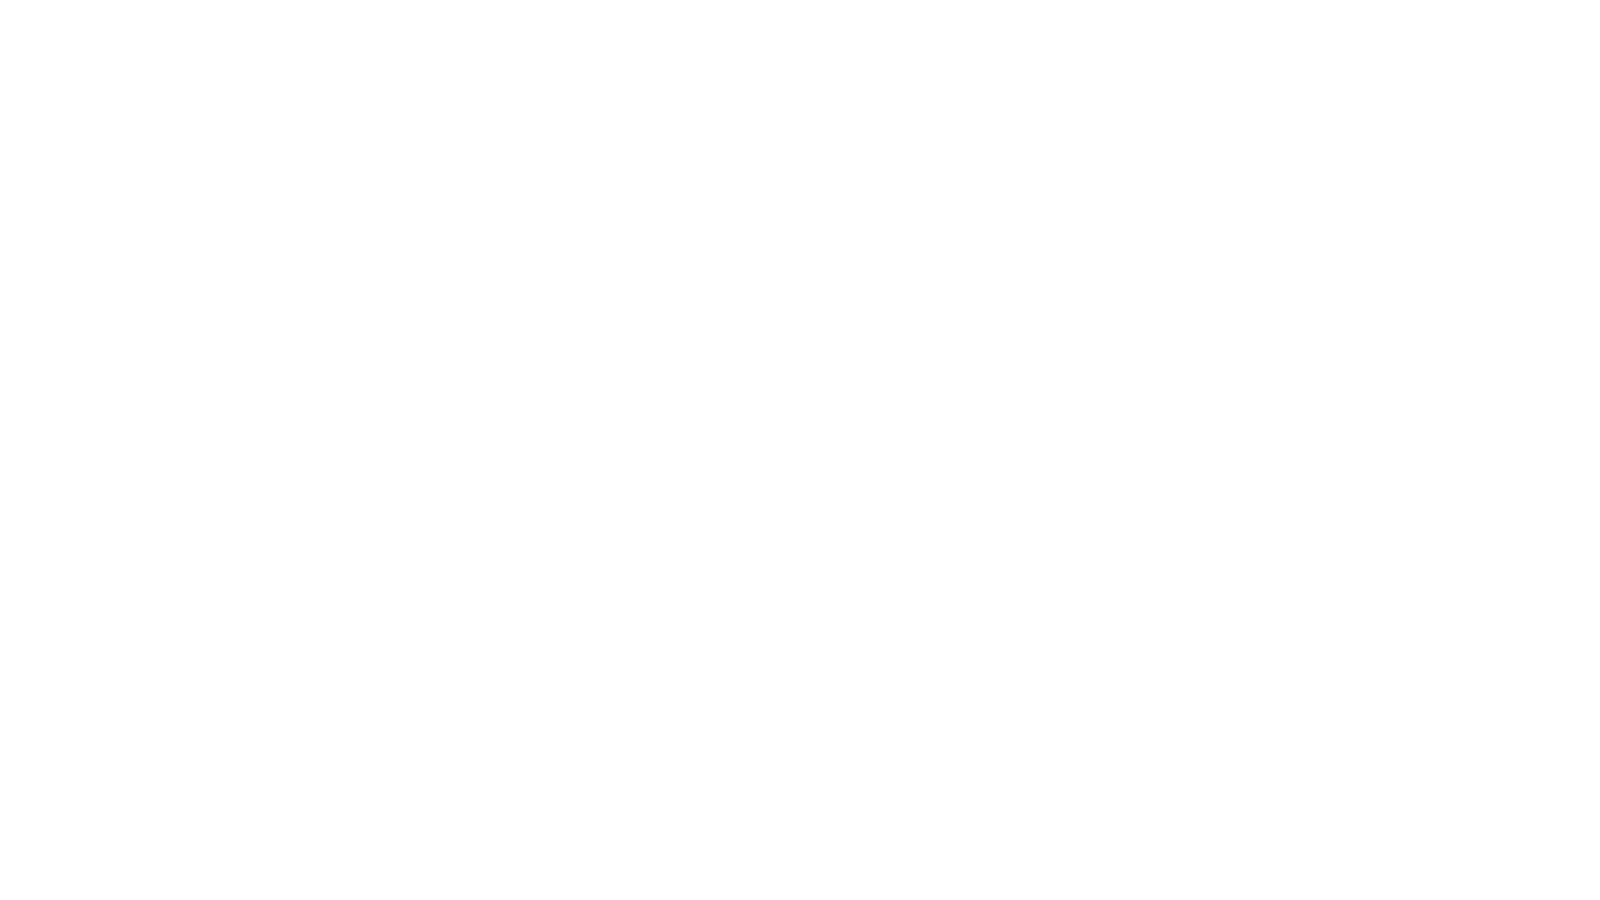 Nevi Gaming Desk illustration from the front in white showing height and width specifications on a black background